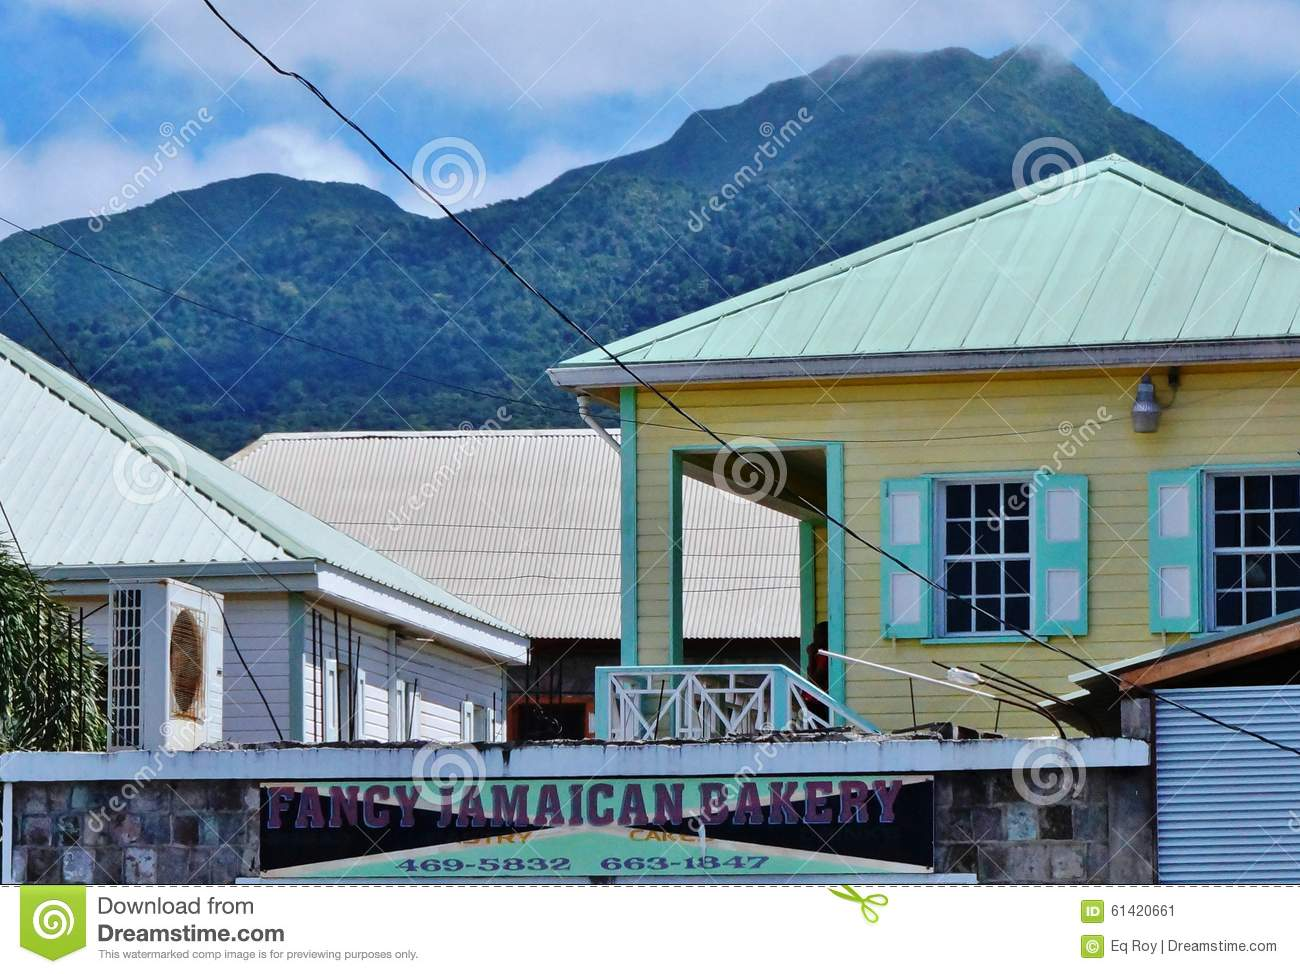 west indies federation essay Other articles where west indies federation is discussed: dominica: the french  and british colonial period: in 1958 dominica joined the west indies federation.